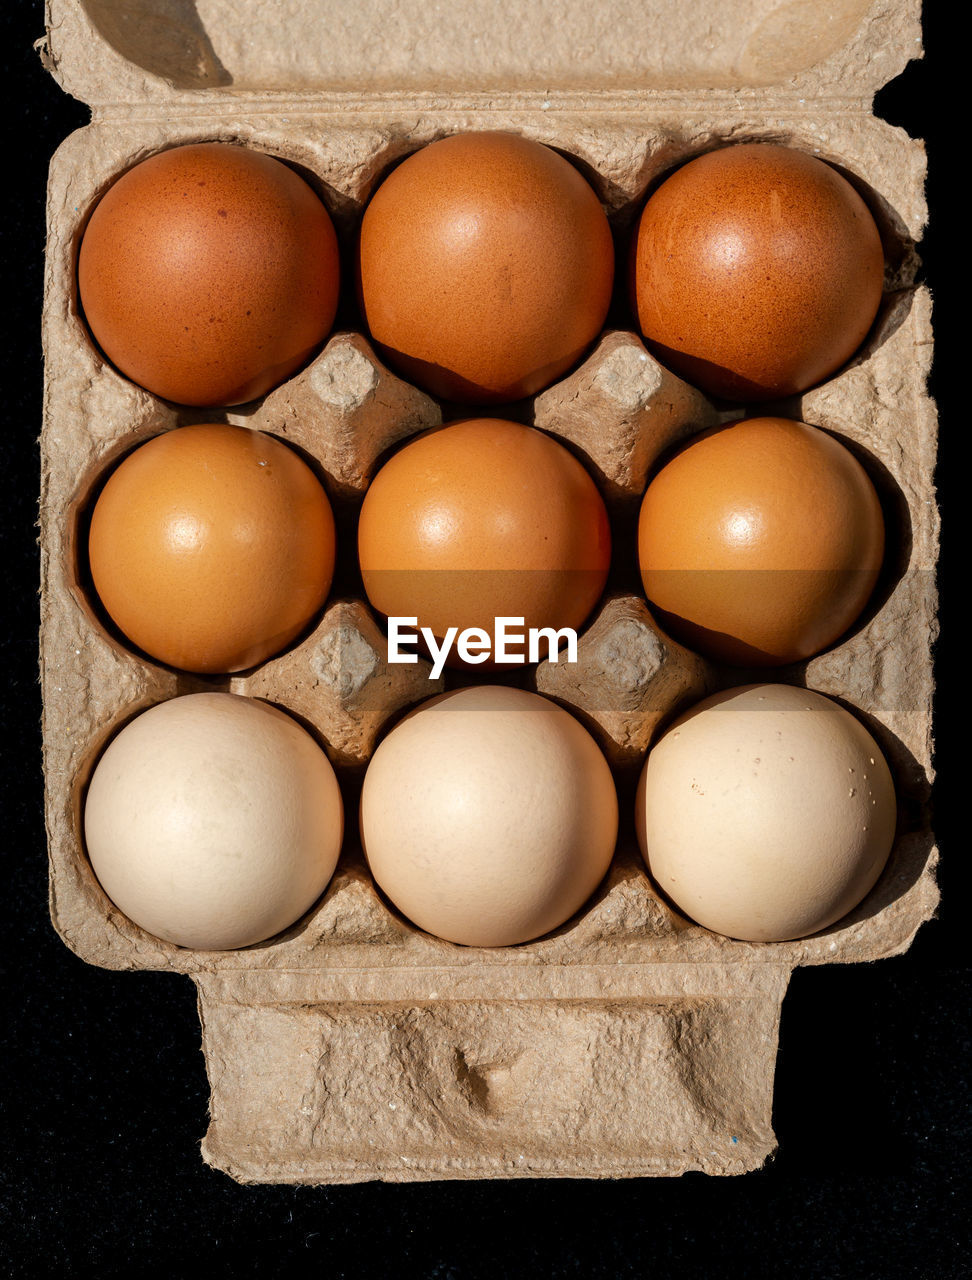 egg, food, food and drink, healthy eating, freshness, wellbeing, indoors, directly above, still life, egg carton, close-up, brown, no people, fragility, arrangement, vulnerability, raw food, in a row, side by side, container, order, black background, box - container, tray